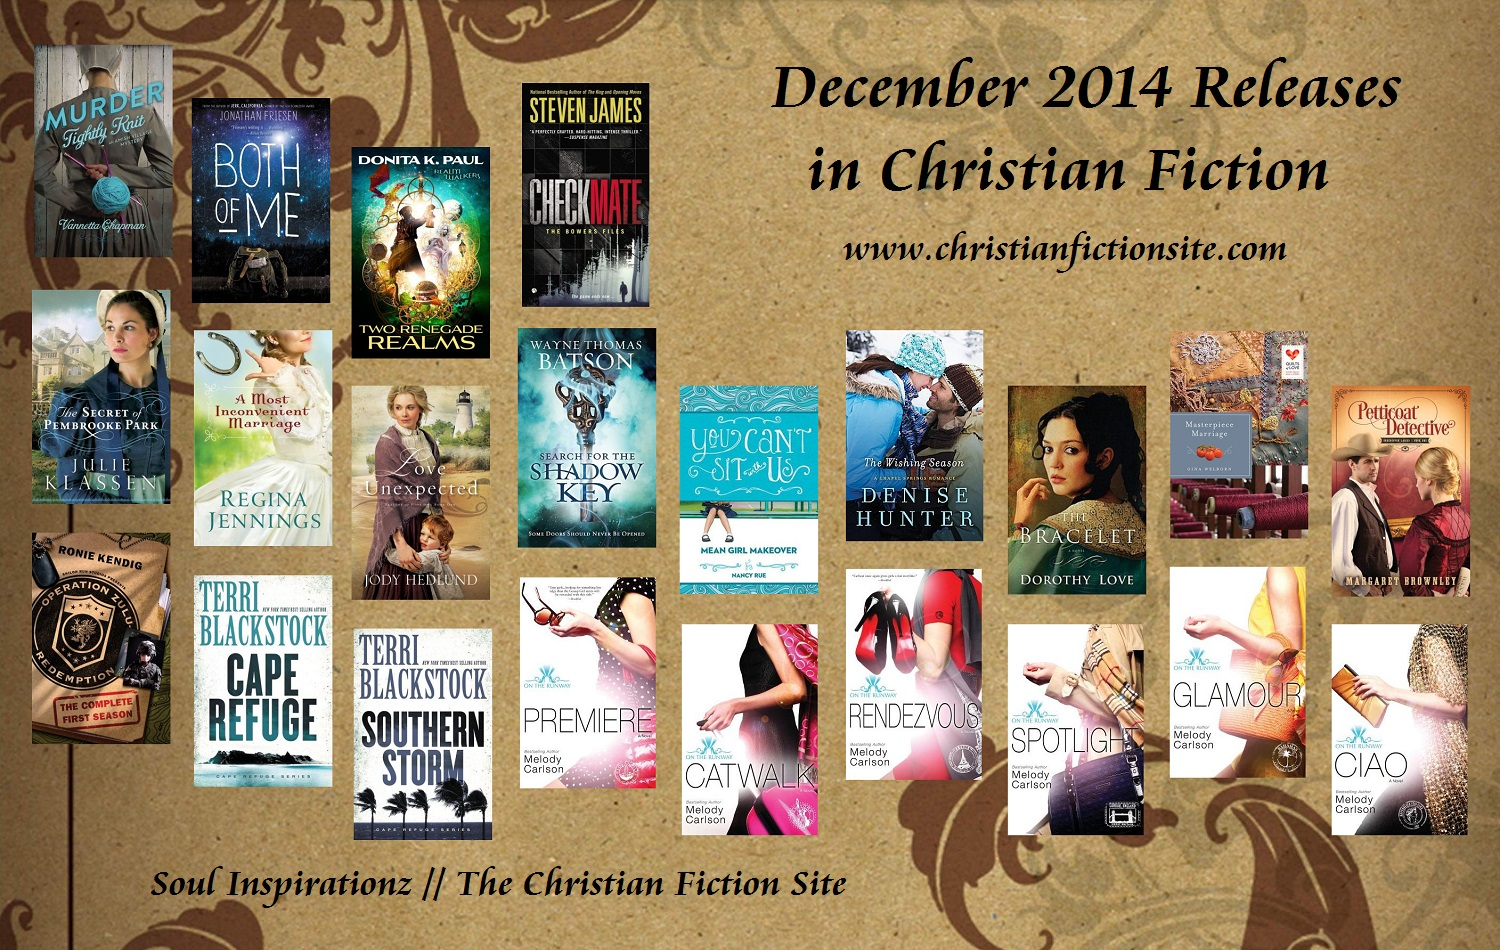 December 2014 Christian Fiction